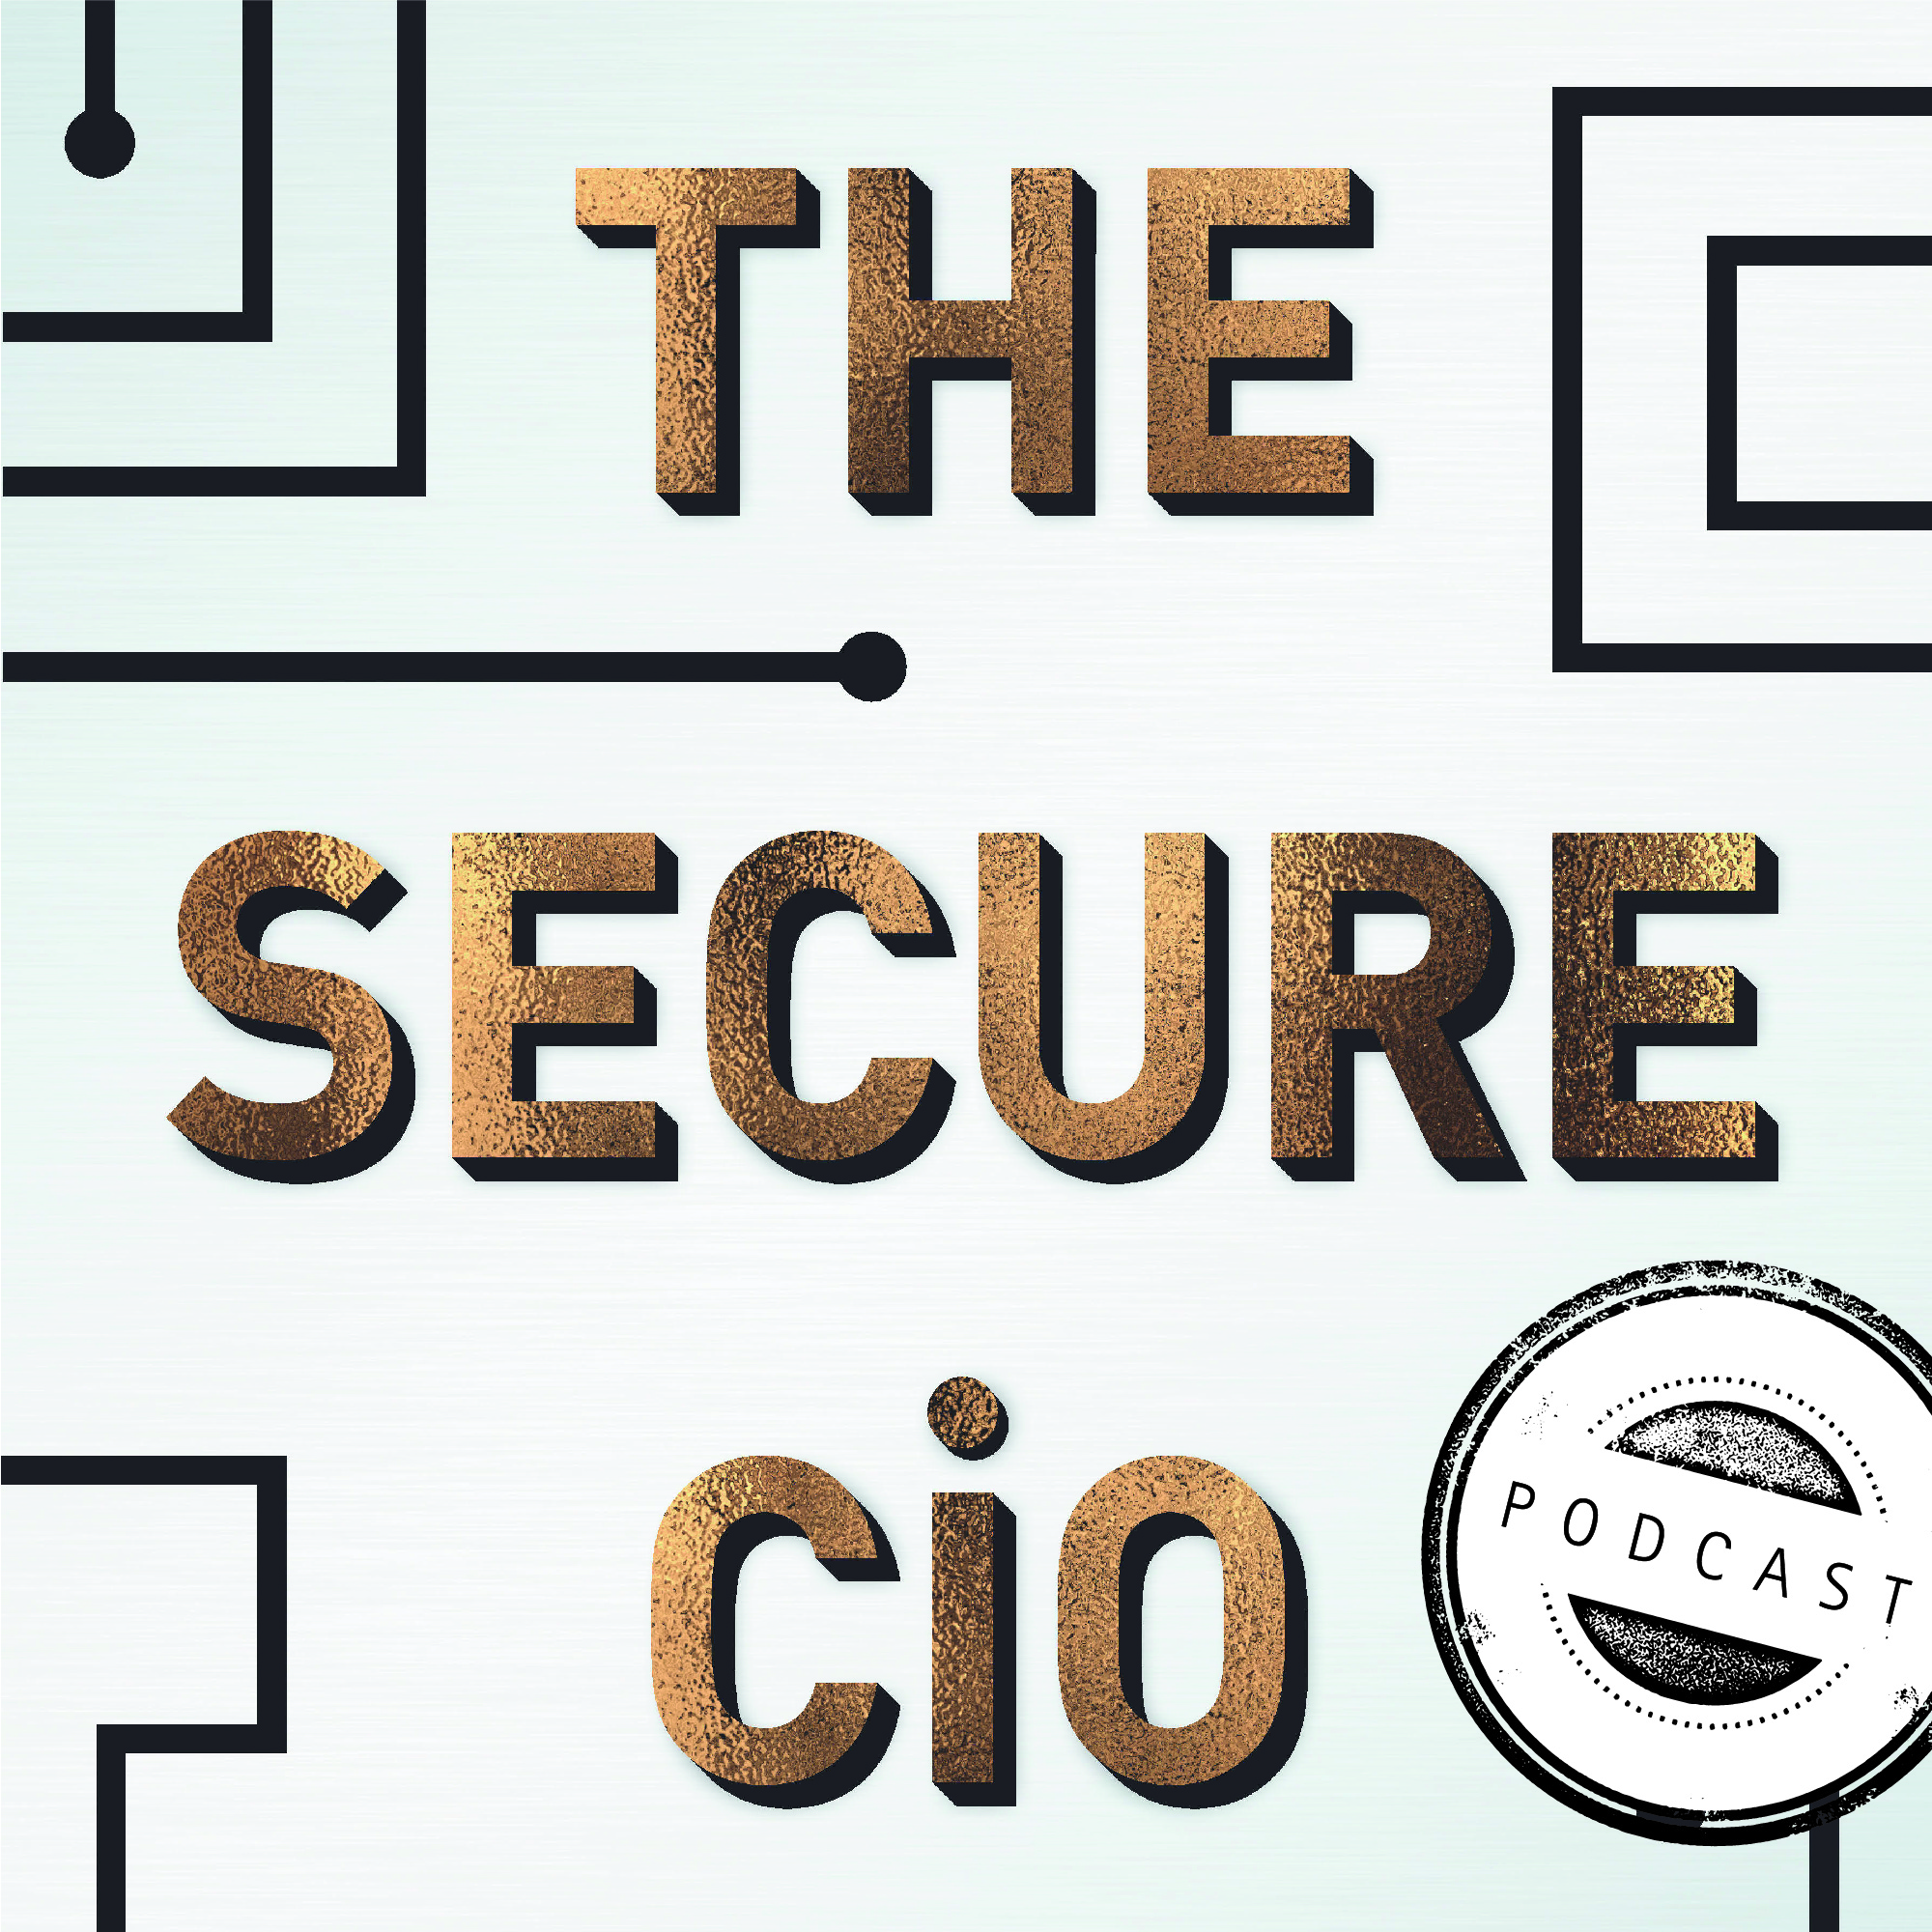 Join me, Claire Pales, as I chat with some of the cybersecurity industry's greatestminds. Taking a page from my book 'The Secure CIO', the podcast features conversations about leadership, diversity, sourcing of great cyber security talent and opinions on the skills crisis.